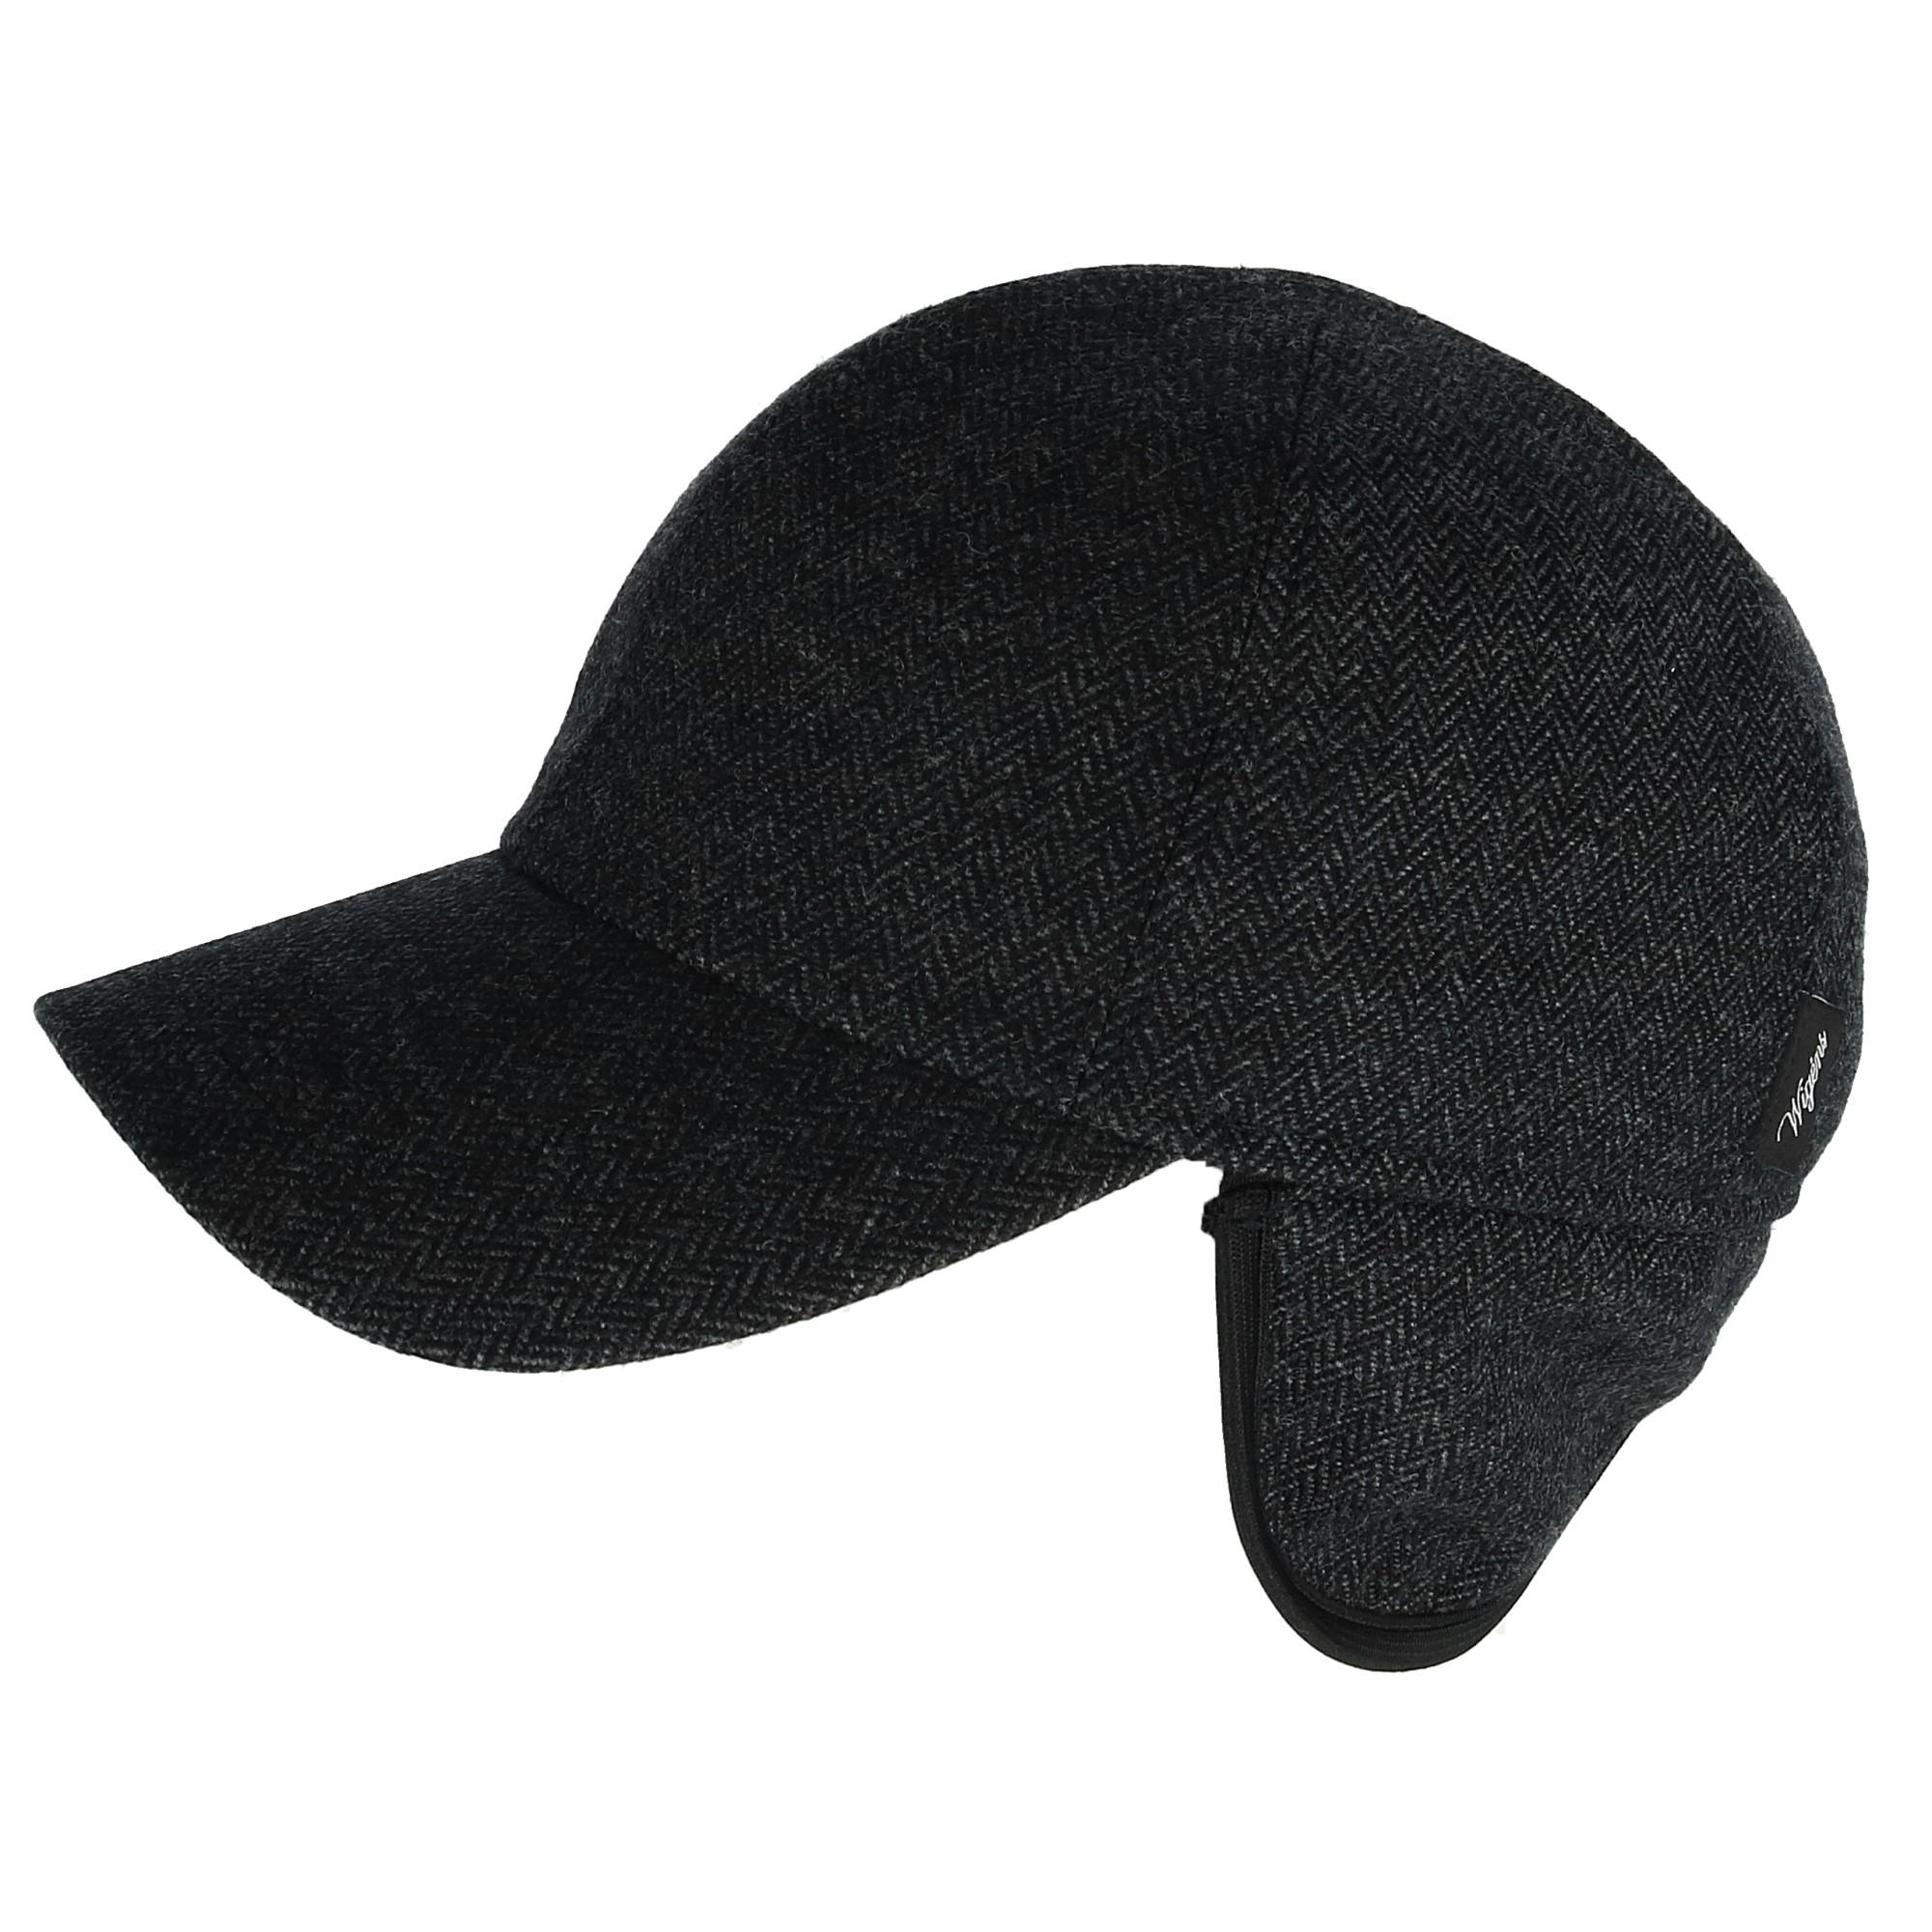 New Wigens Men s Herringbone Blend Baseball Cap with Earflaps  32000206e32